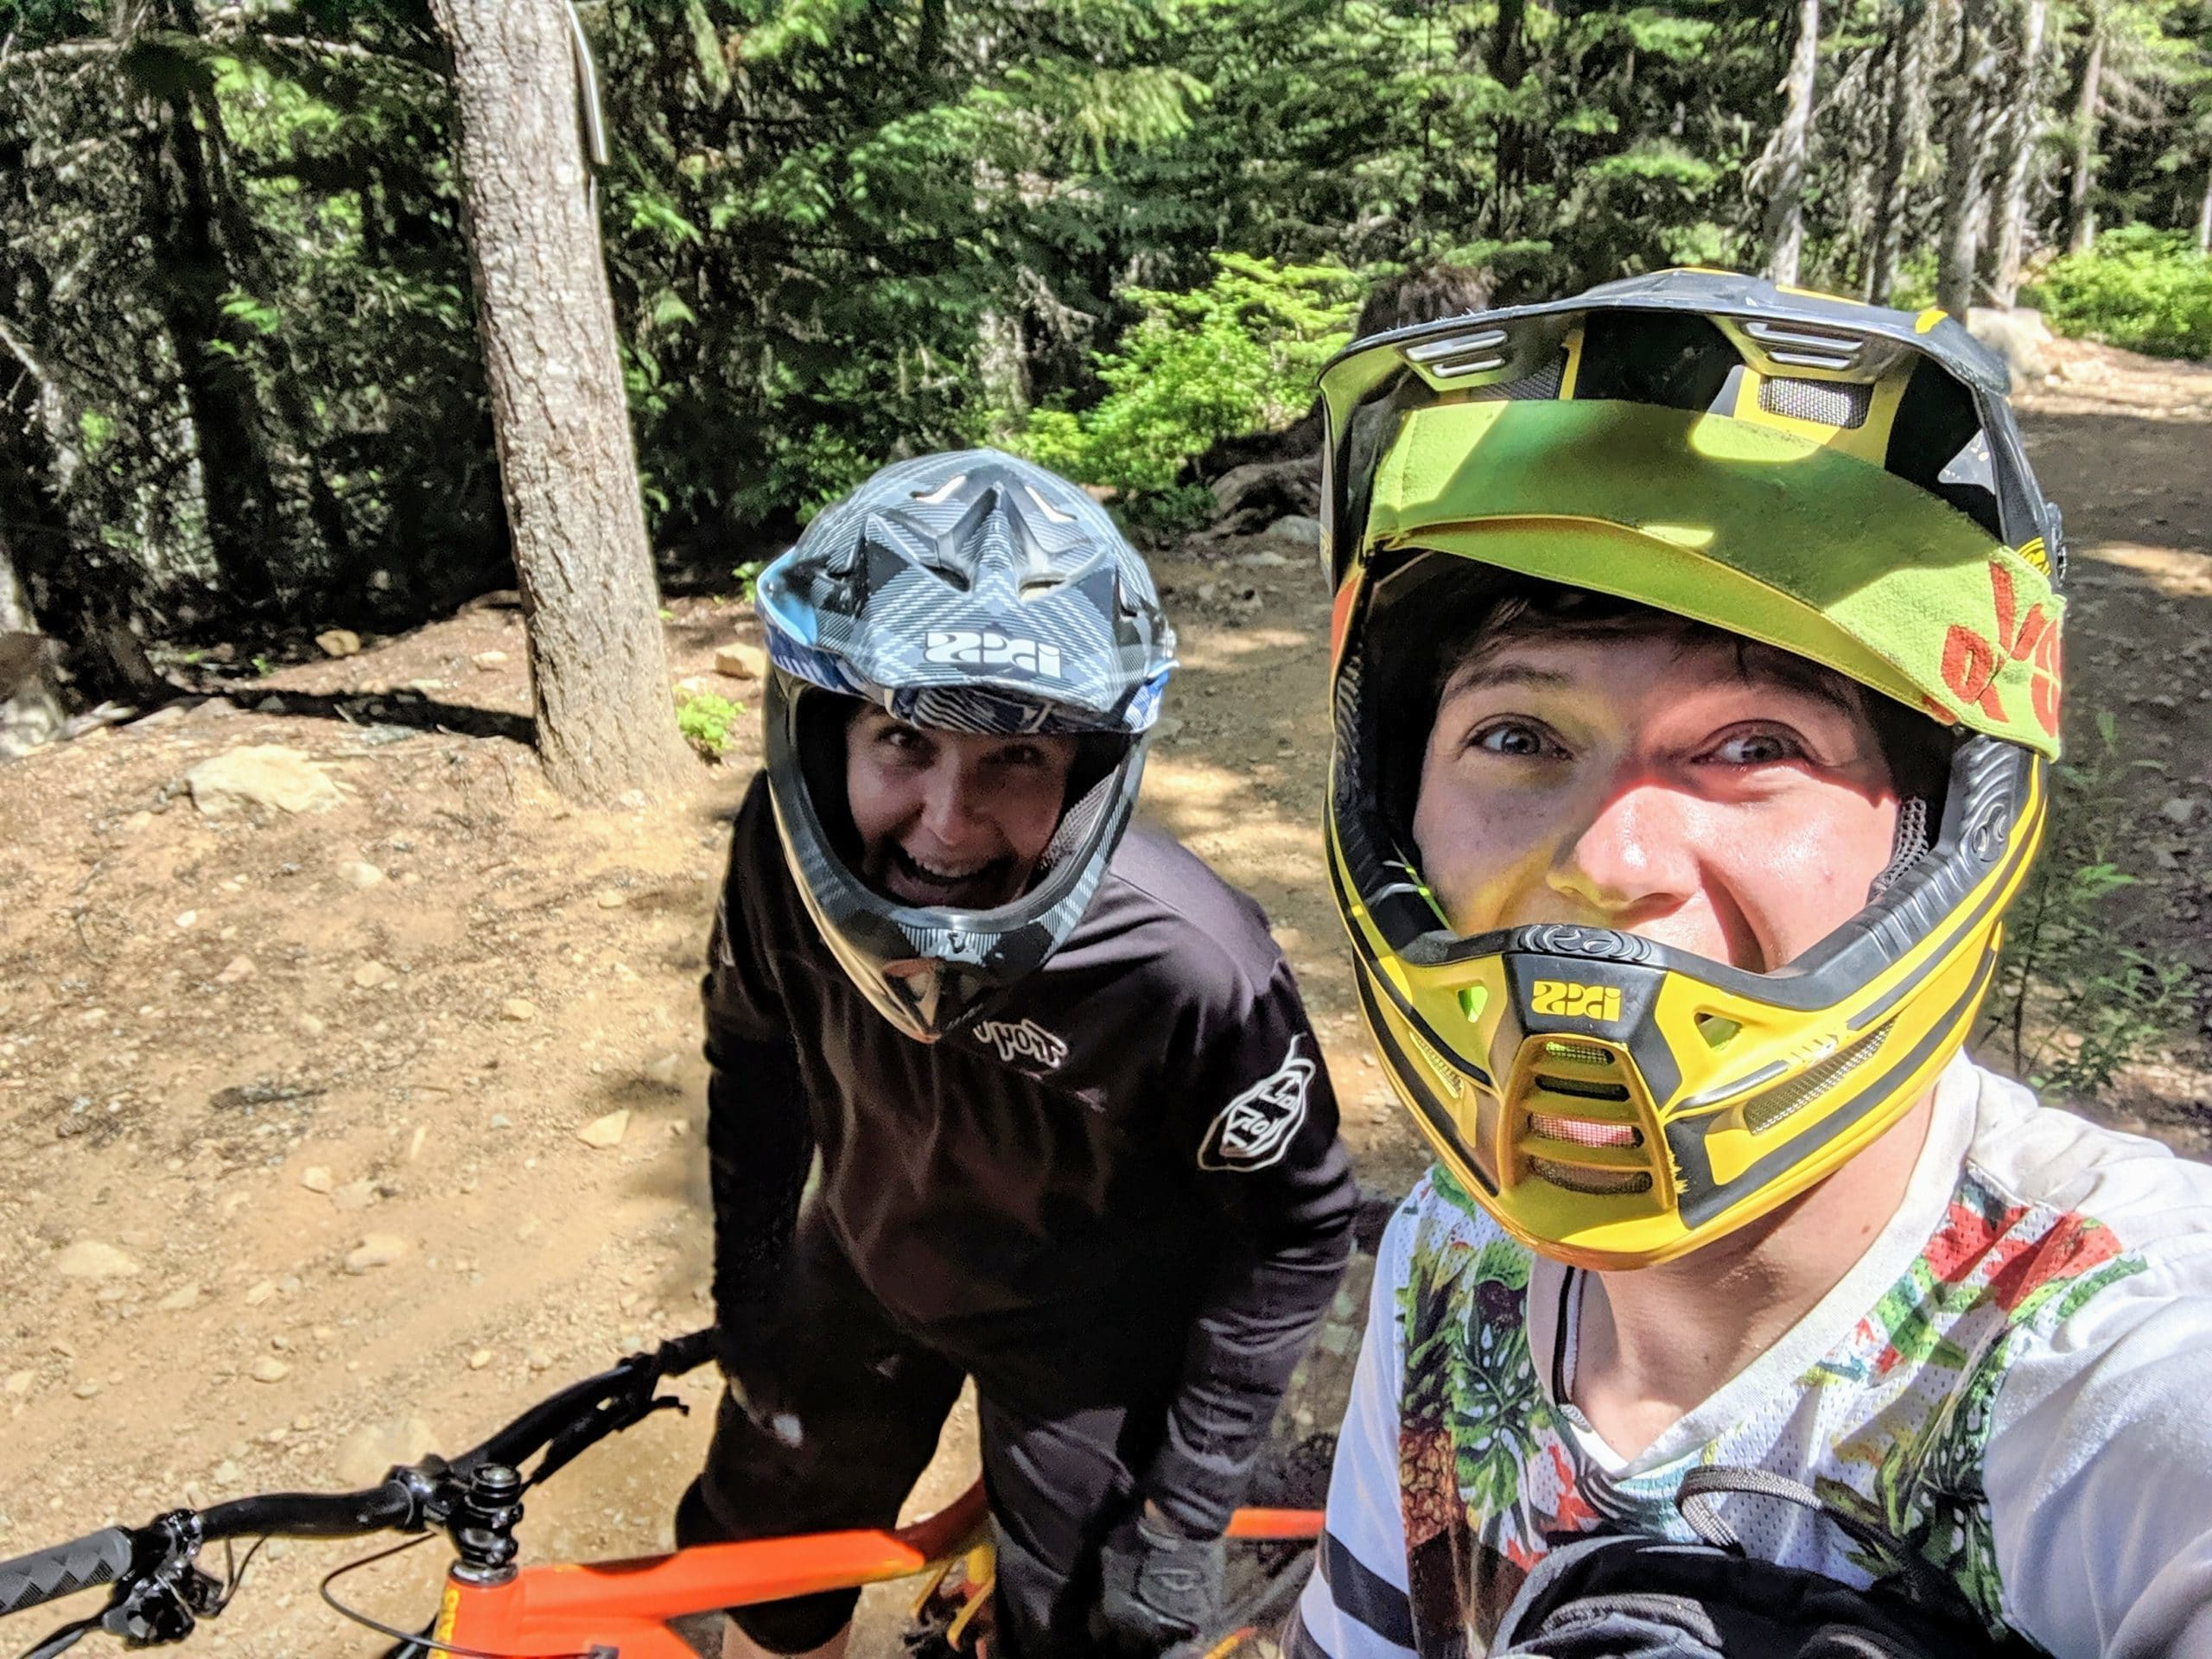 A selfie of a young man and woman riding mountain bikes in the forest